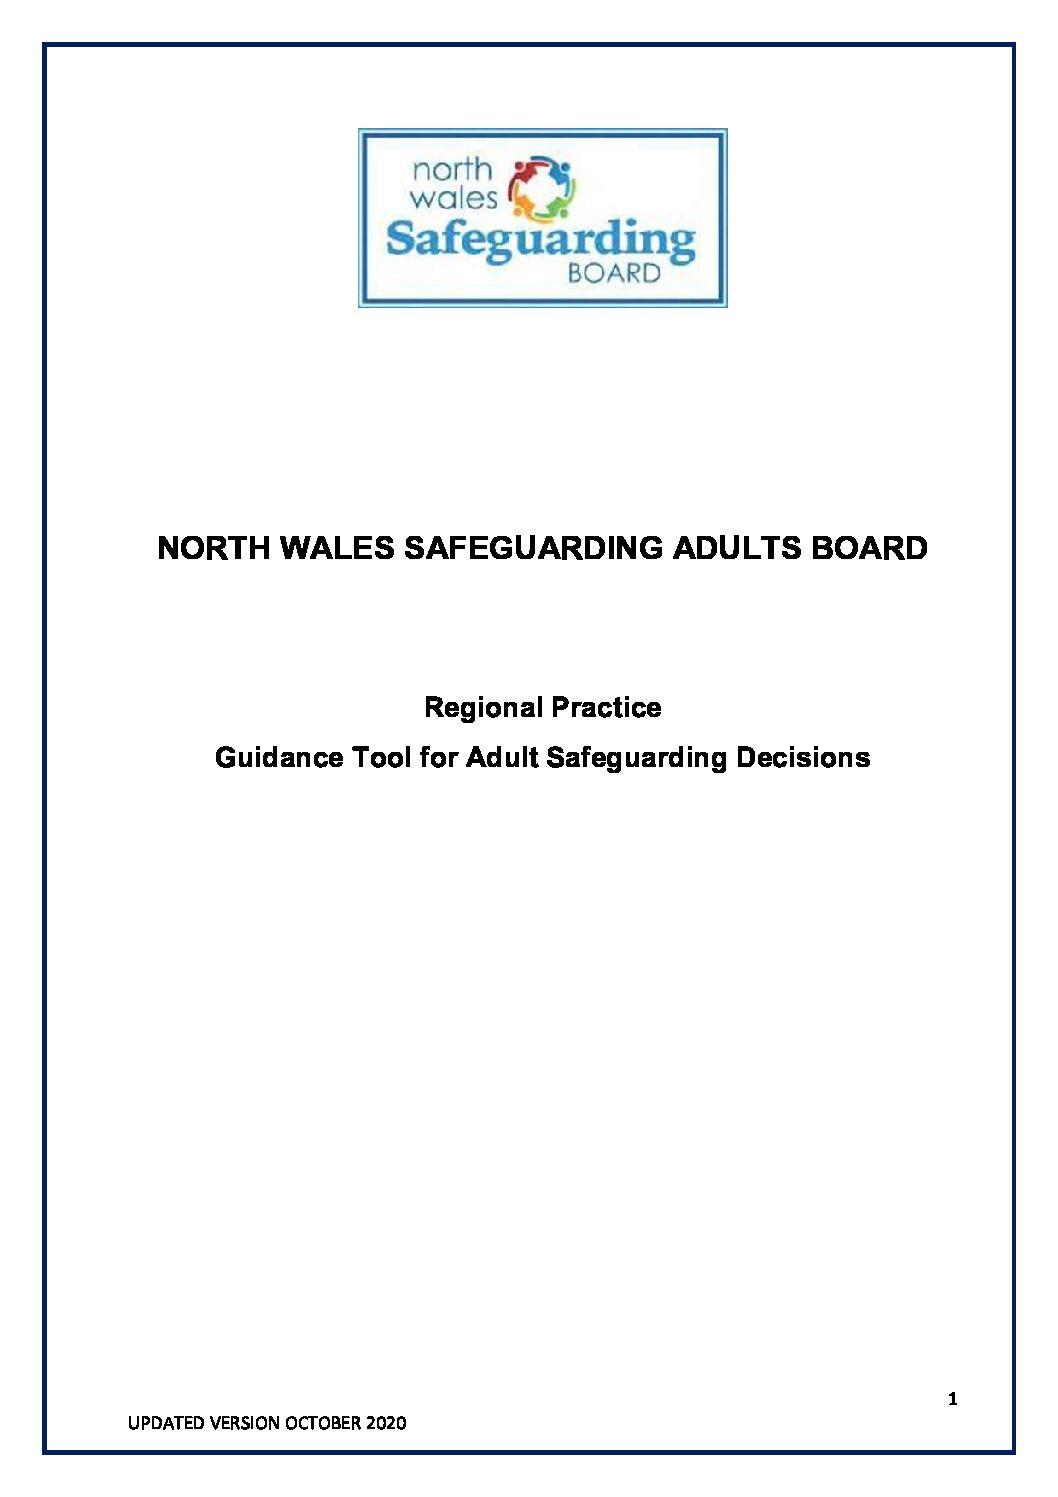 NWSAB Guidance Tool for Adult Safeguarding